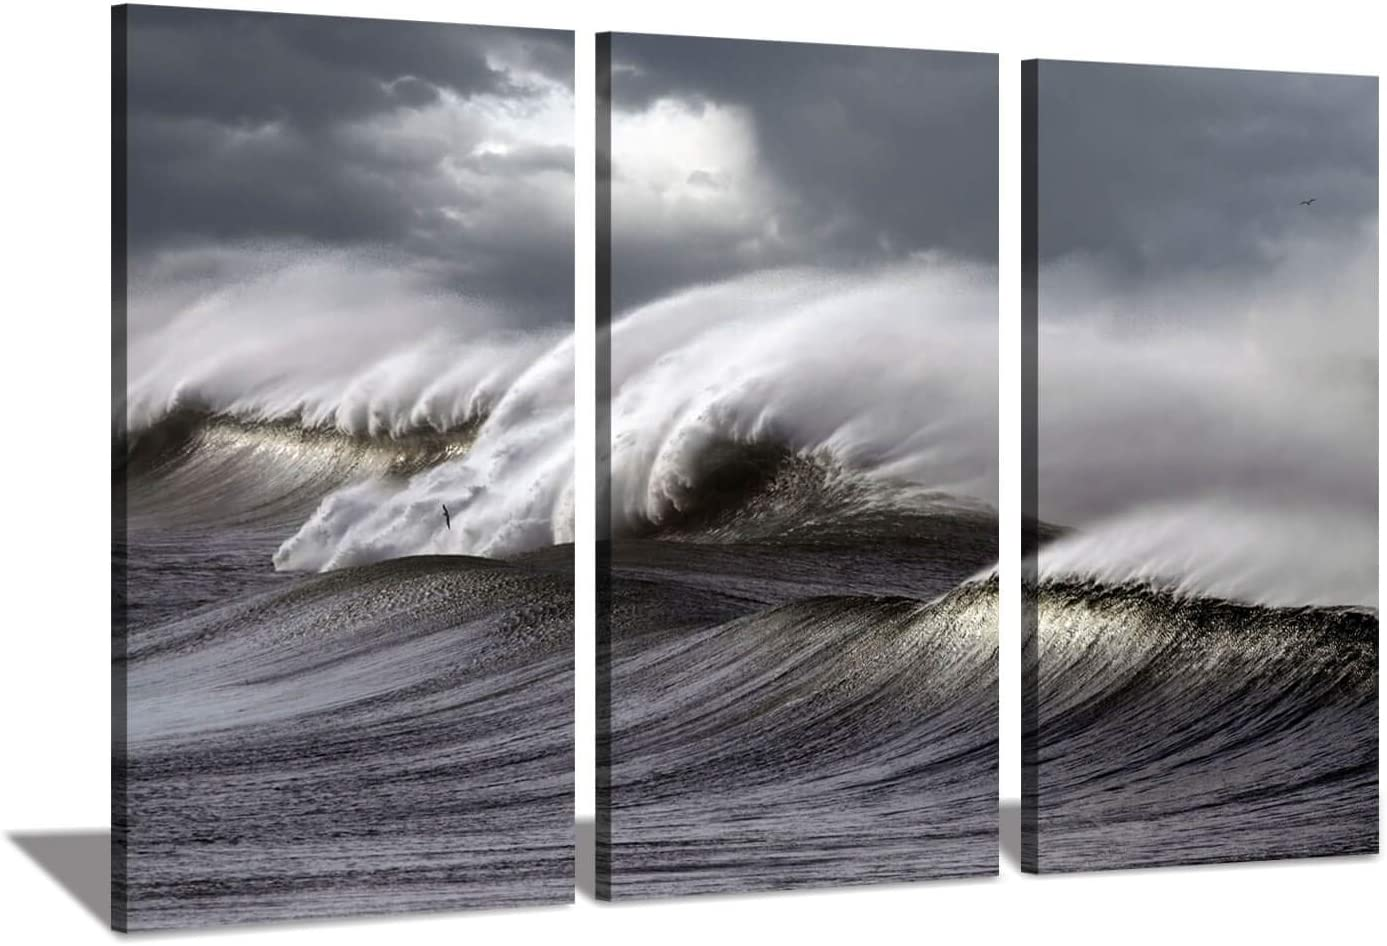 Amazon Com Hardy Gallery Ocean Wave Picture Painting Artwork Tropical Seascape Wave Wall Art Print On Canvas For Living Room Office Posters Prints